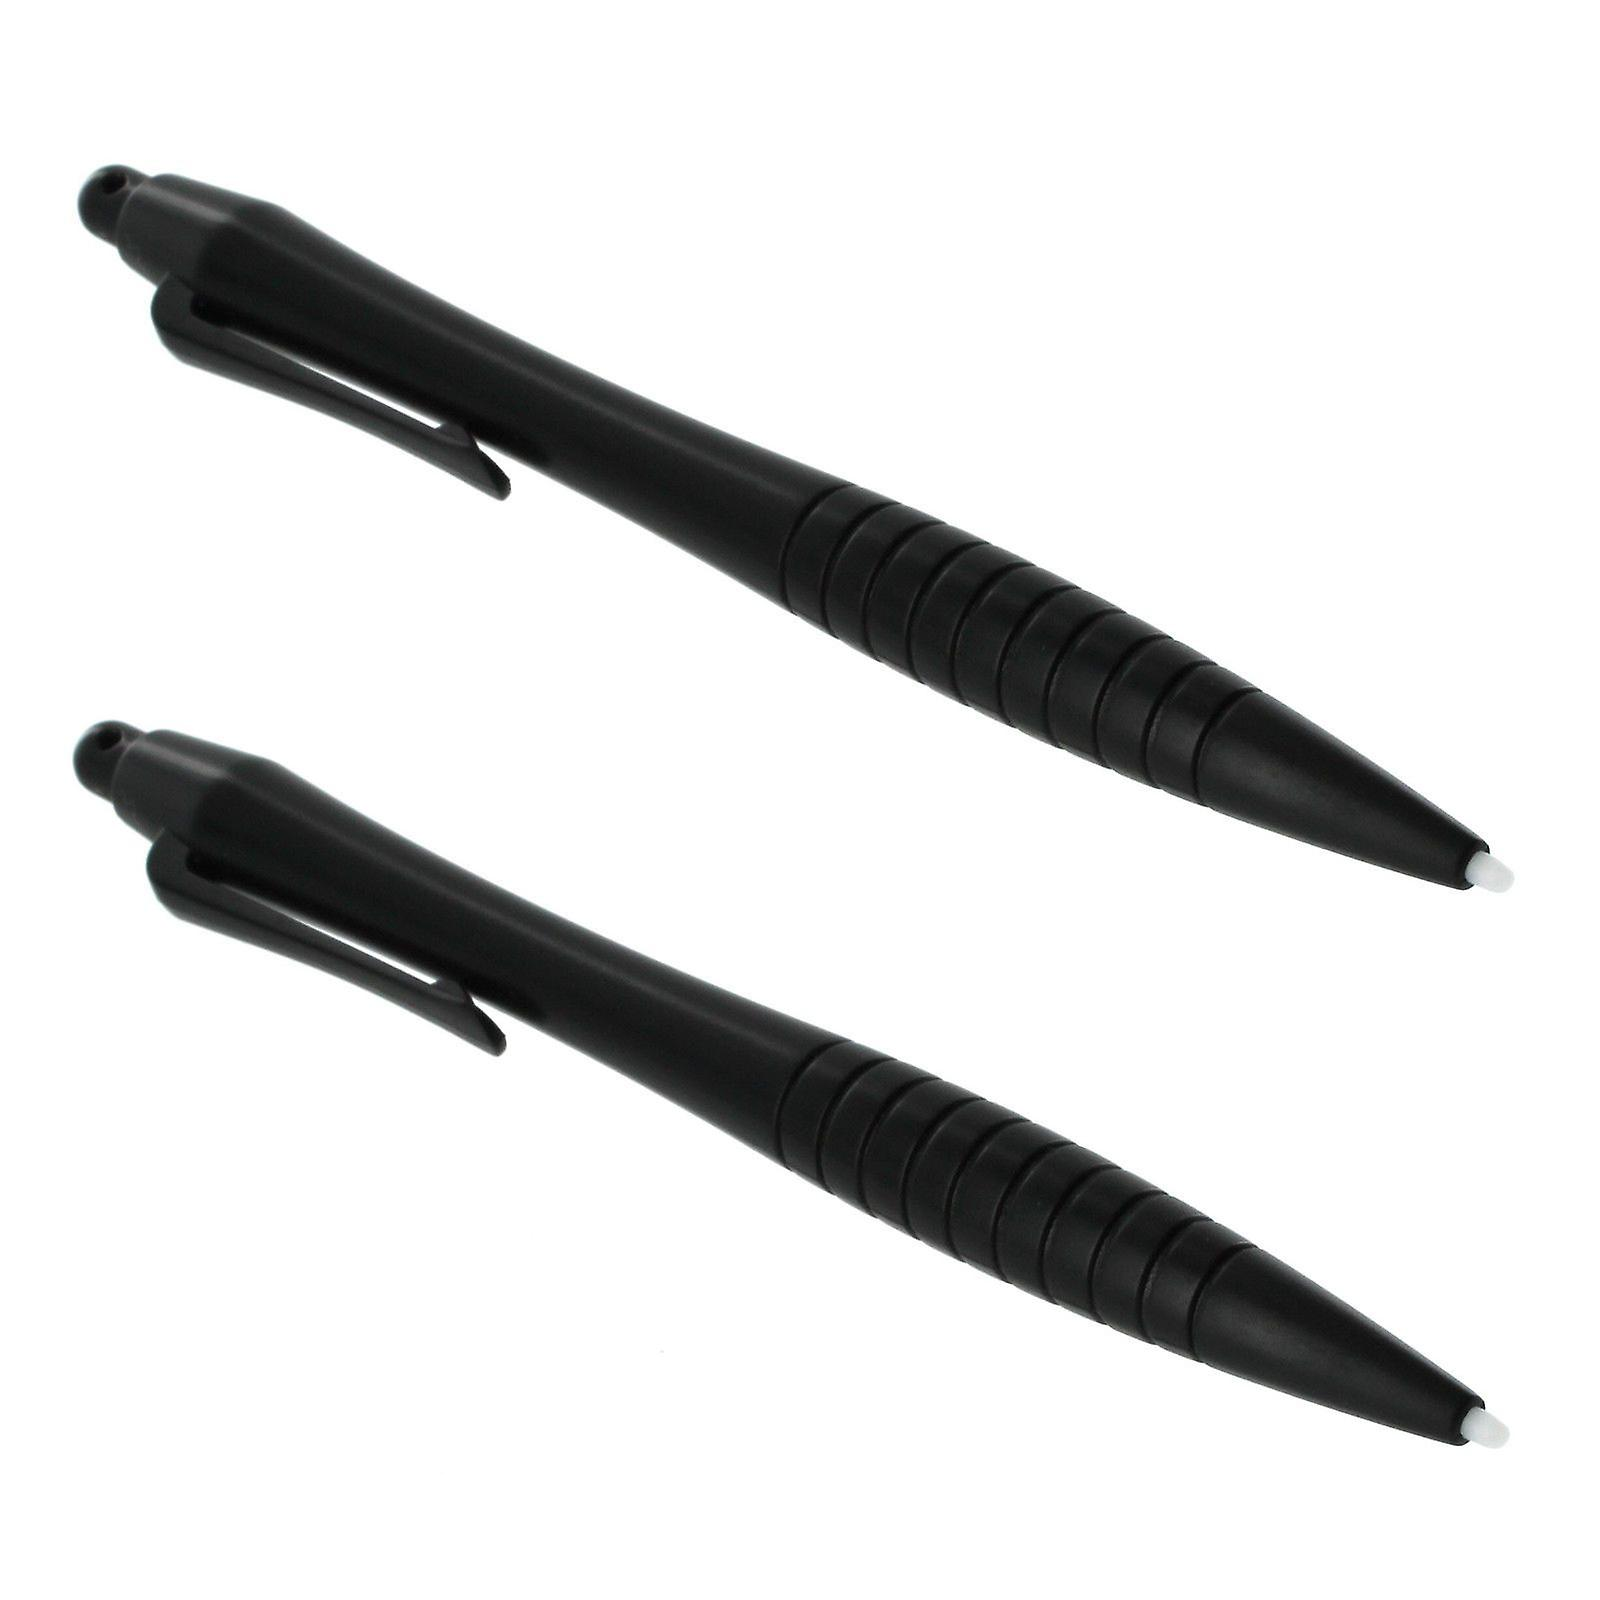 Pro large stylus touch screen big ergonomic pen with ribbed handle grip for nintendo 3ds xl, 2ds, dsi xl, dsi, ds lite, ds, wii u - 2 pack black